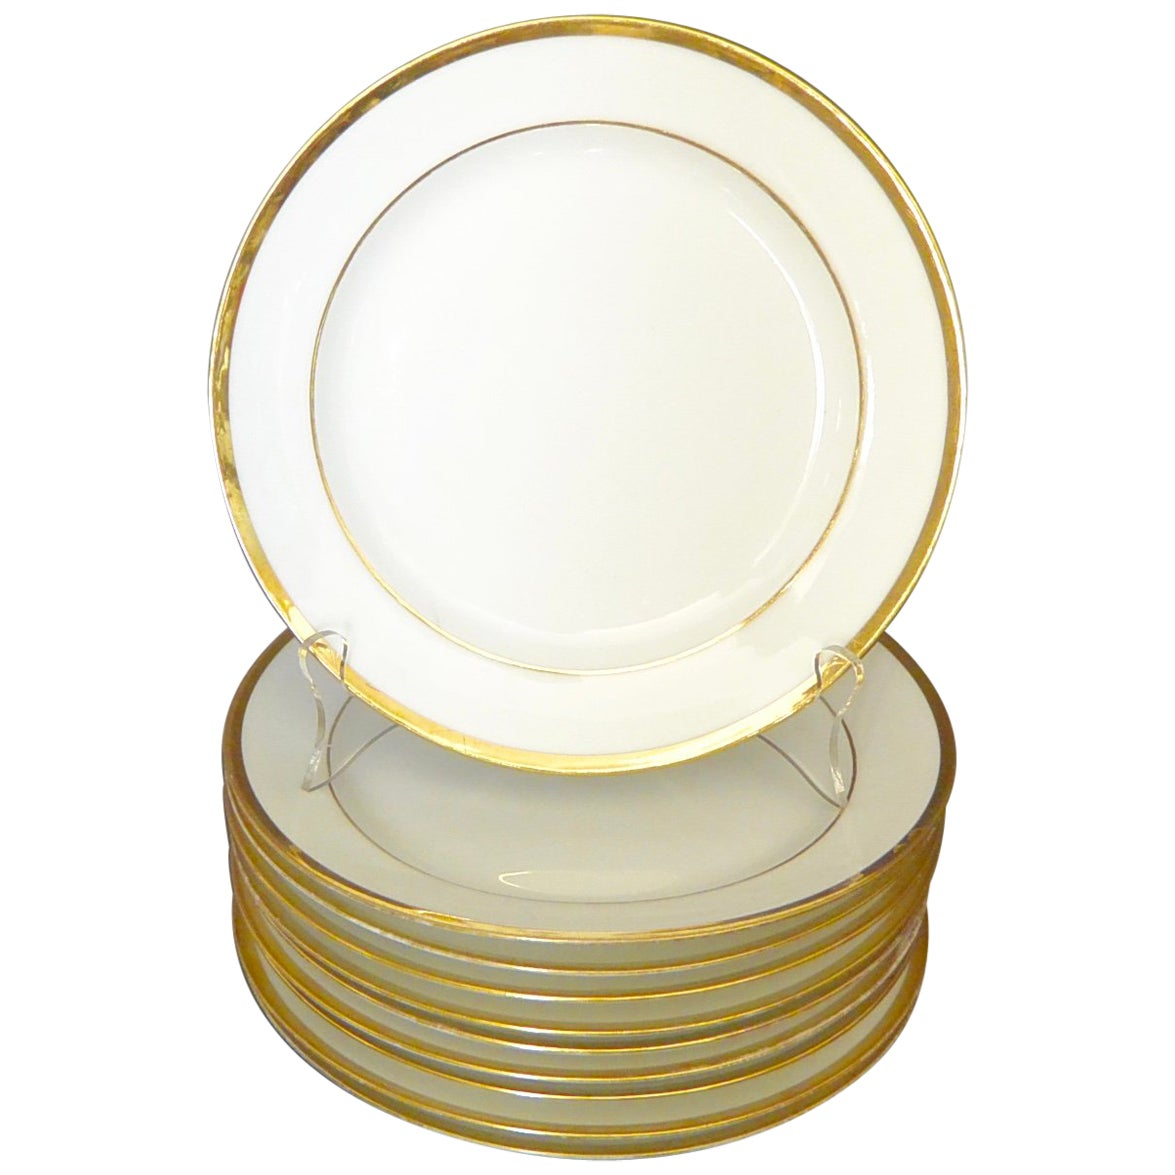 Set of Ten White and Gilt French Empire Plates